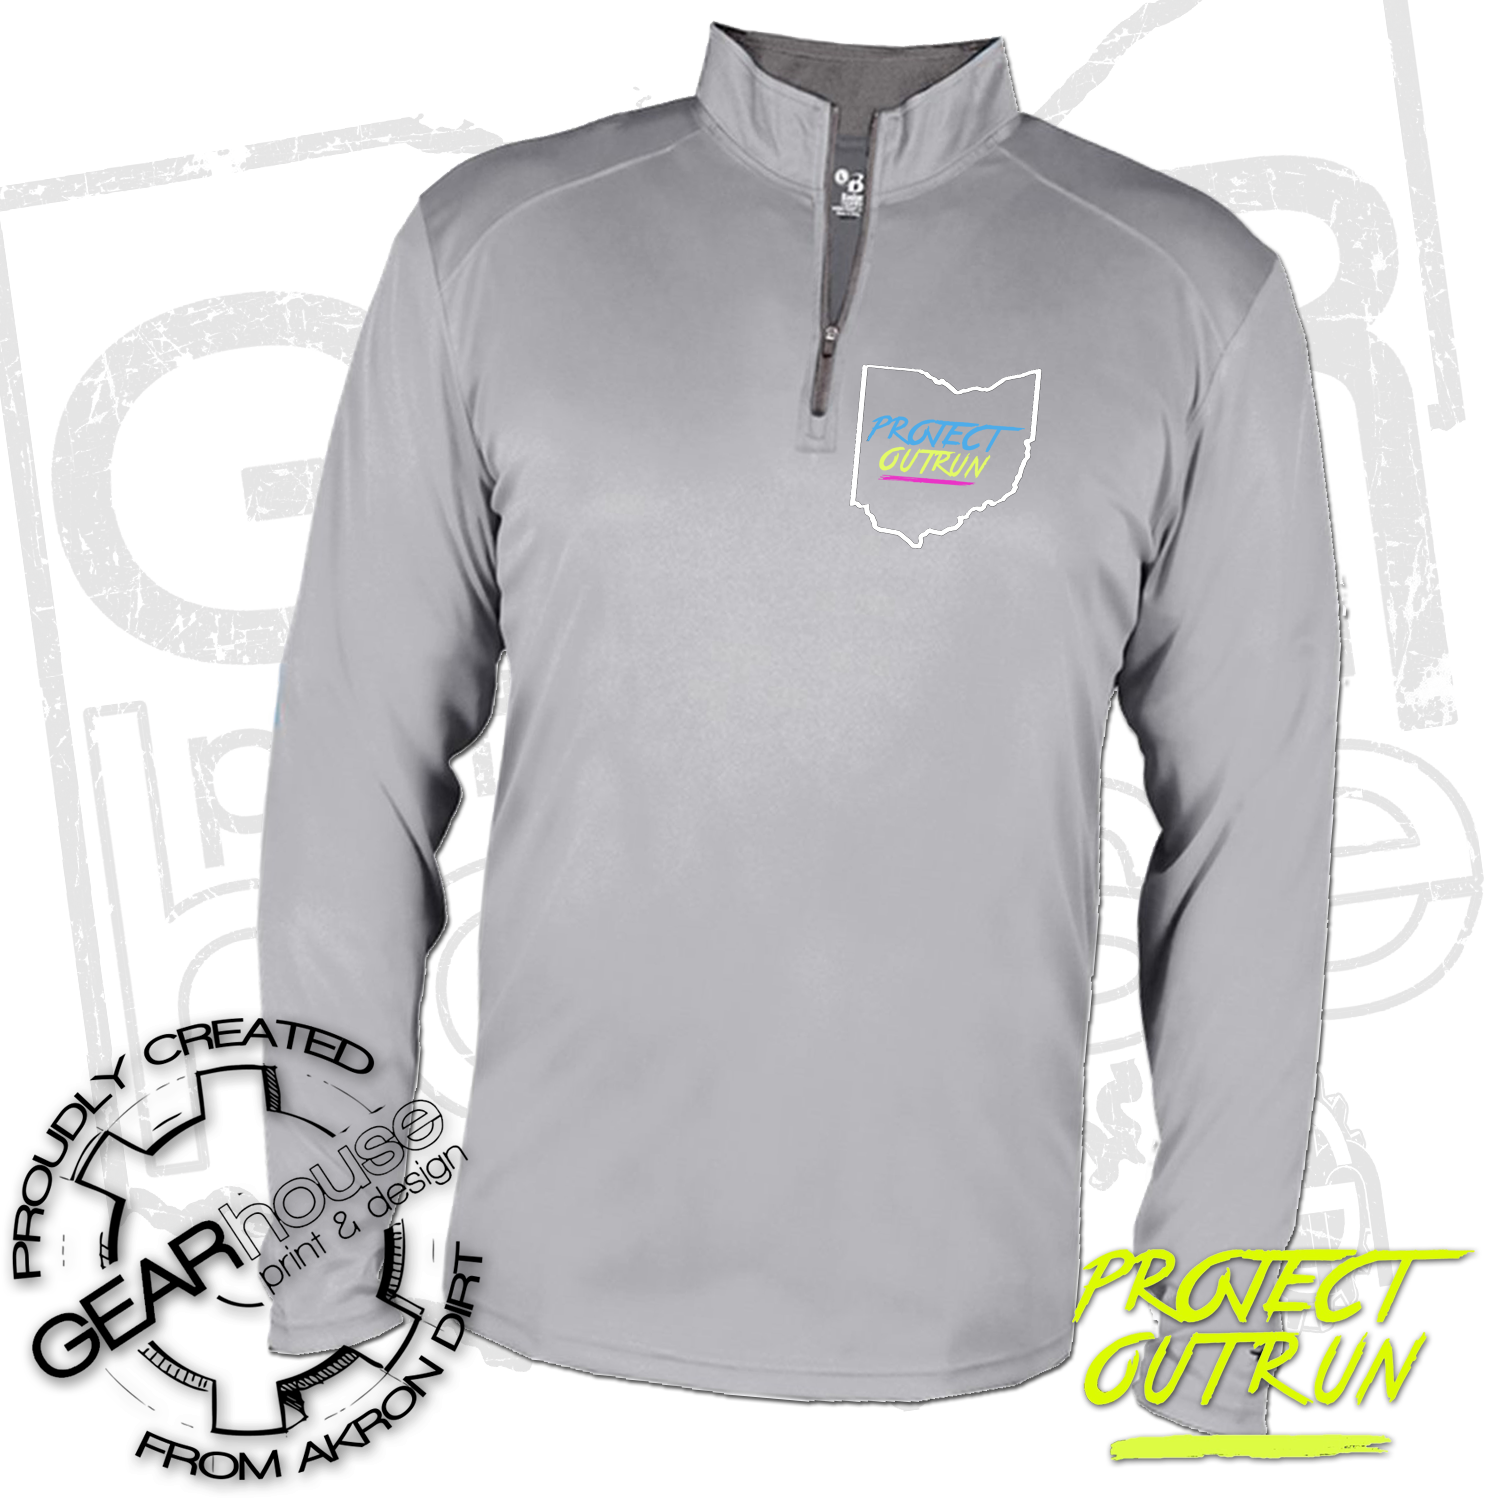 Project Outrun Unisex Quarter Zip Pullover